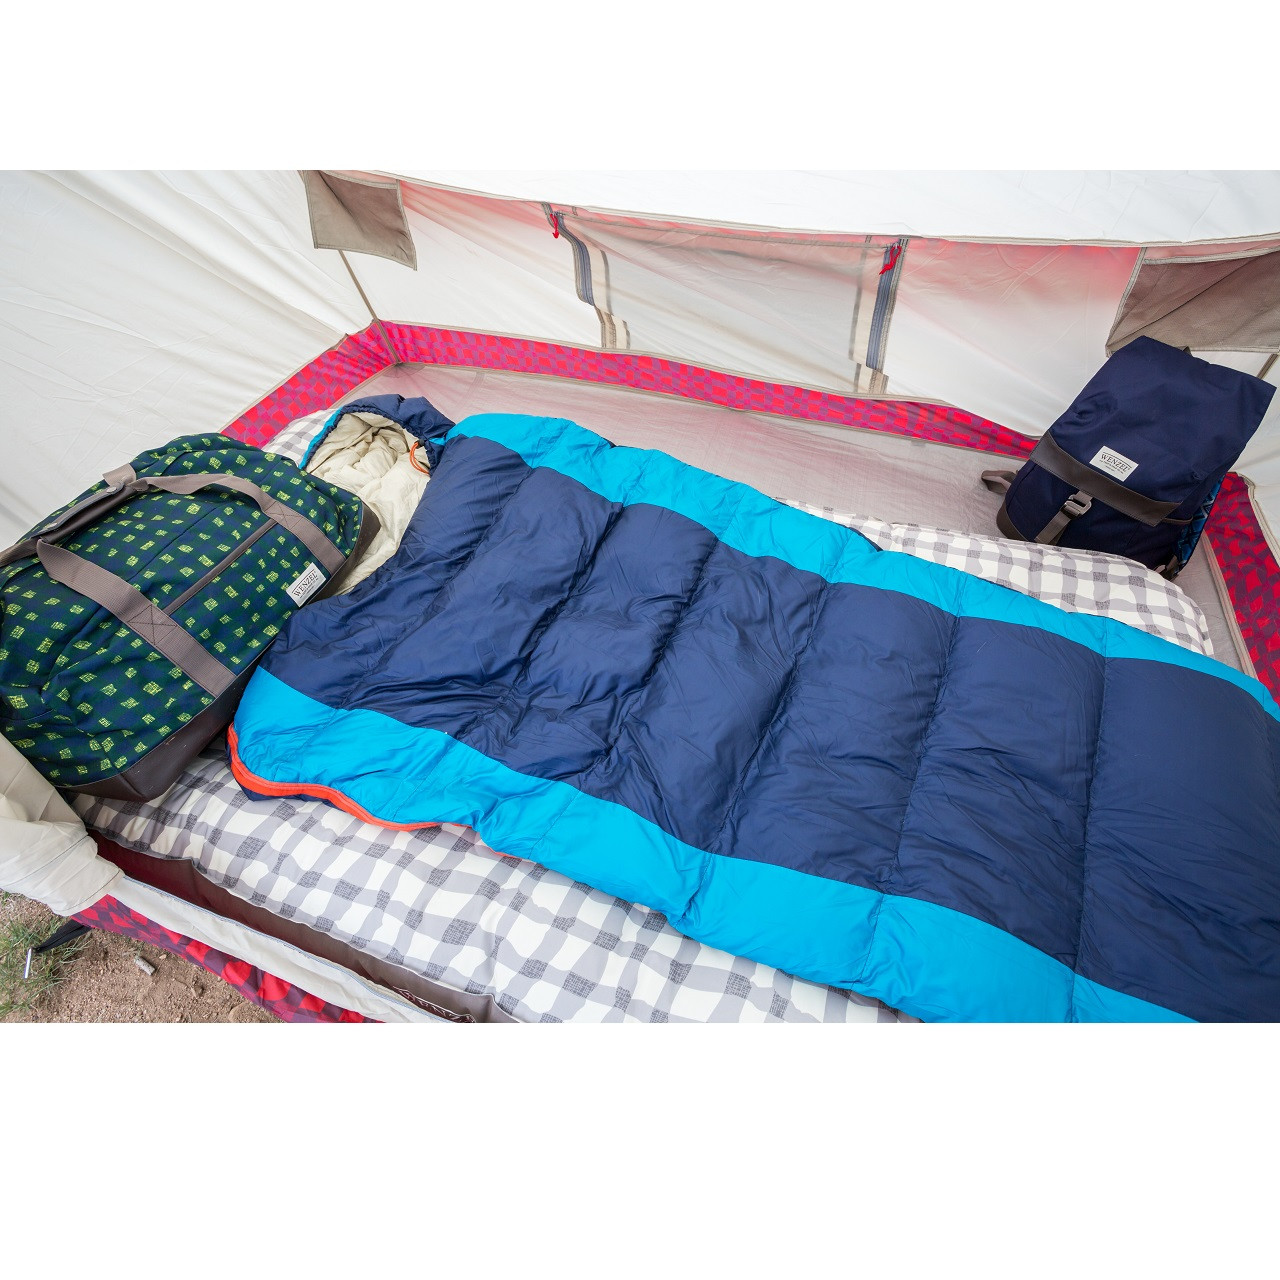 Wenzel Jailbird sleeping bag laying on top of a Wenzel air mattress inside a Wenzel tent next to a Wenzel duffel bag and tent